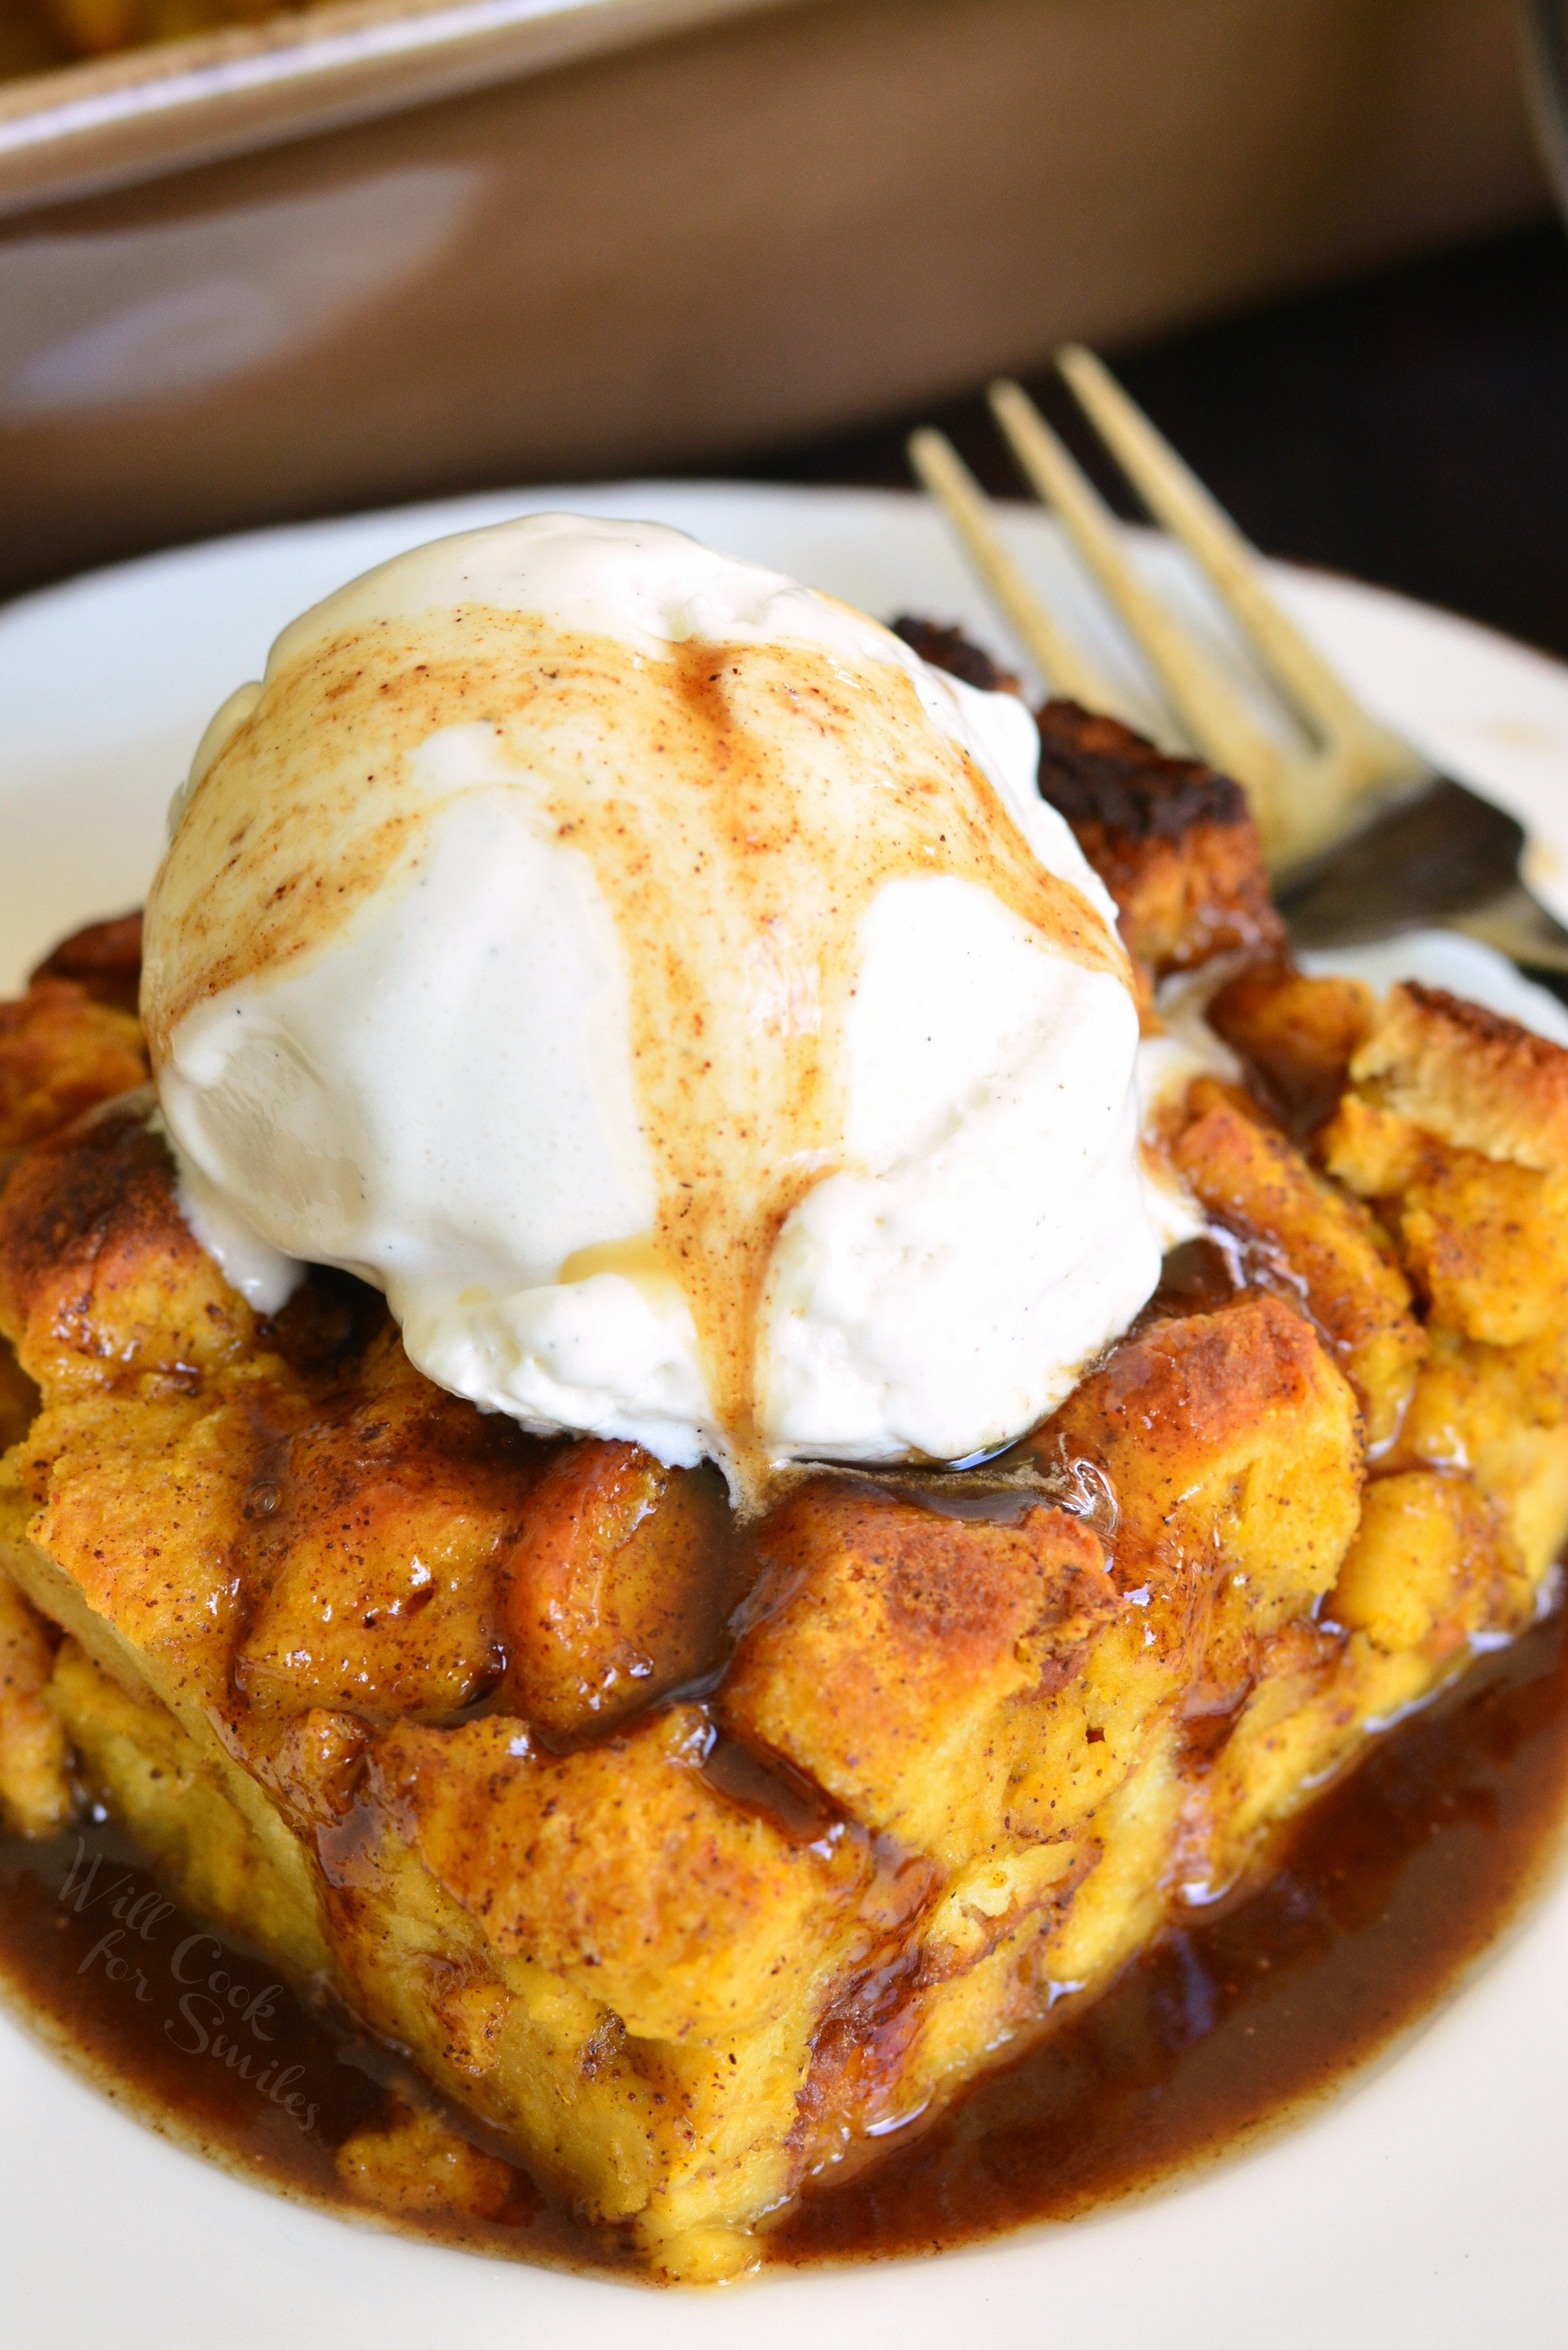 Brioche Pumpkin Bread Pudding. This bread pudding is a comforting fall dessert made with soft and tender Brioche bread. Pumpkin pie and bread pudding came together here to create one luscious dessert recipe. This pumpkin bread pudding is also topped with an easy Butter Rum Sauce and ice cream. #pumpkin #breadpudding #falldessert #sauce #butterrum #dessert